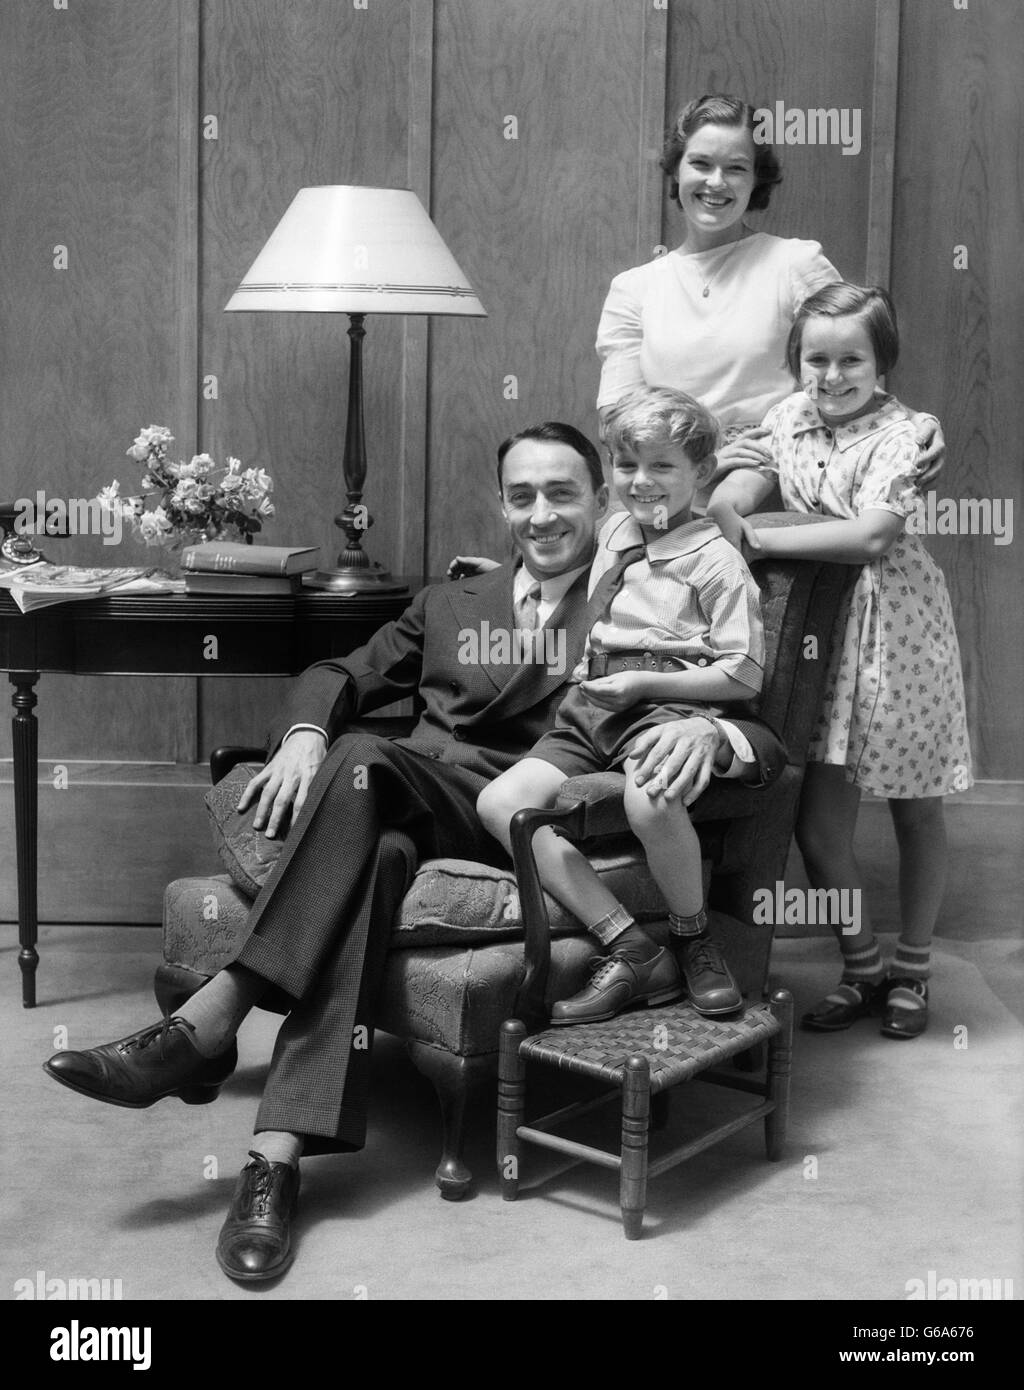 1930s PORTRAIT OF SMILING FAMILY FATHER MOTHER TWO